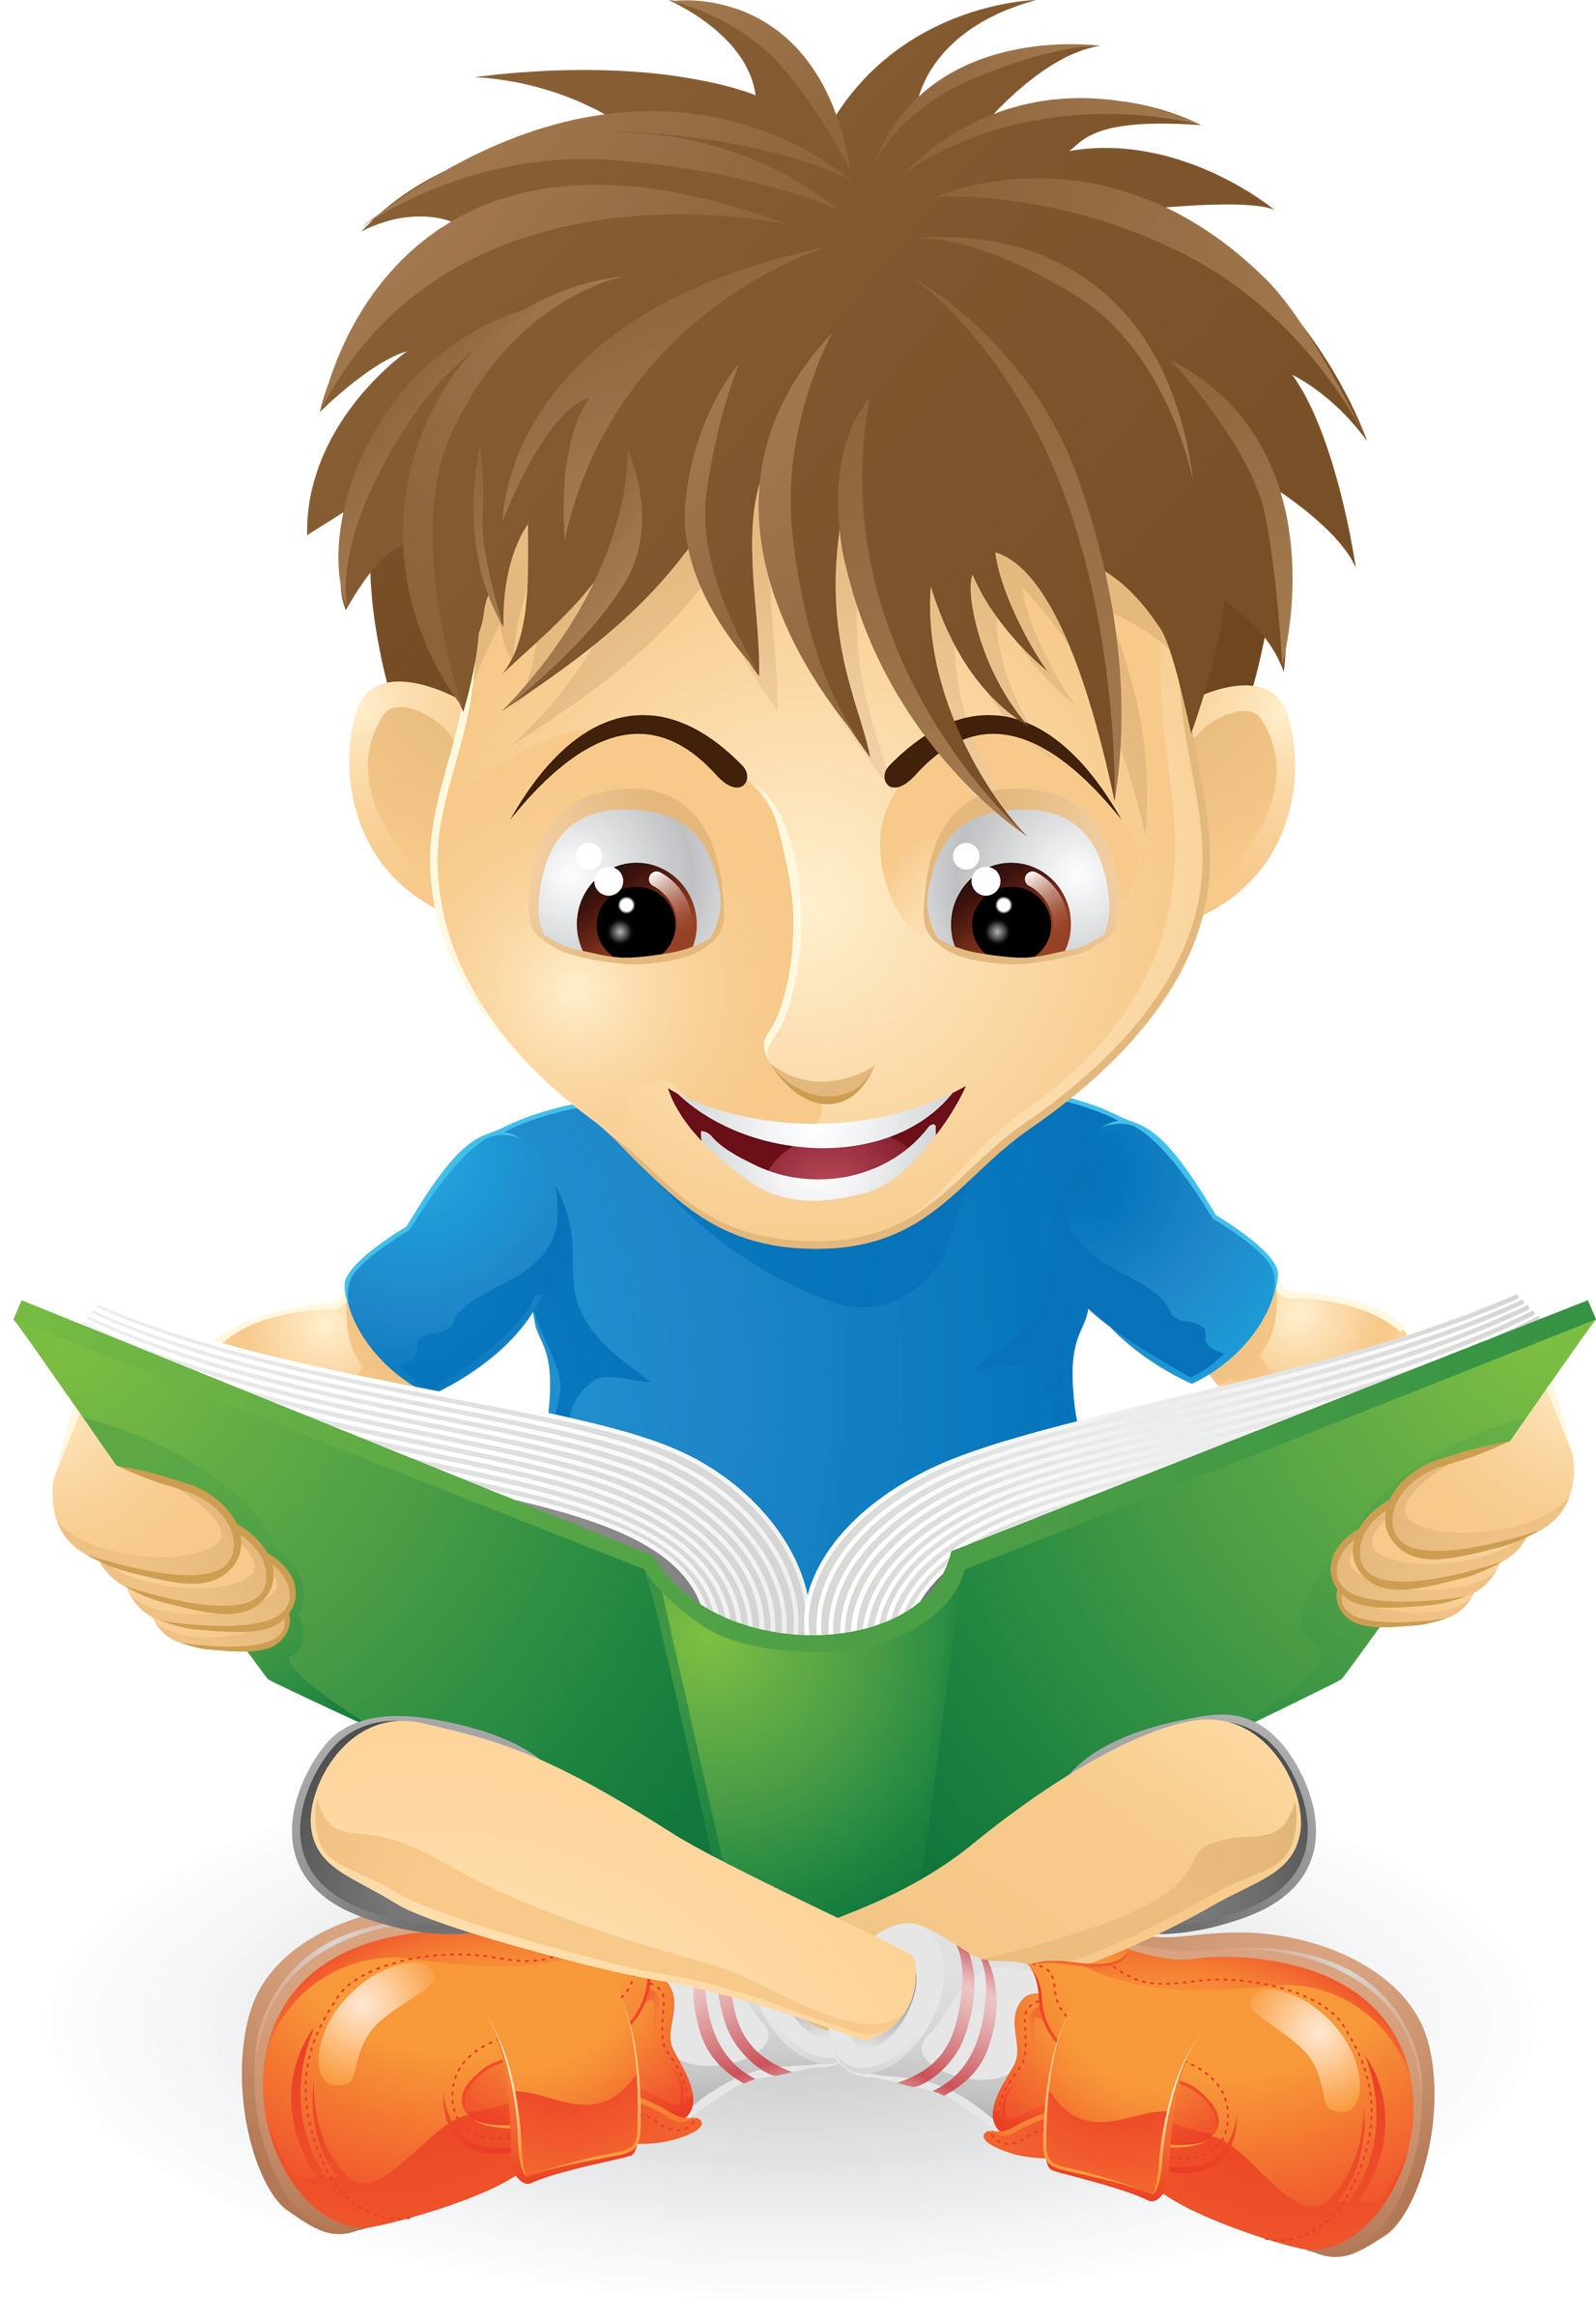 hight resolution of child thinking child reading clipart 7 wikiclipart